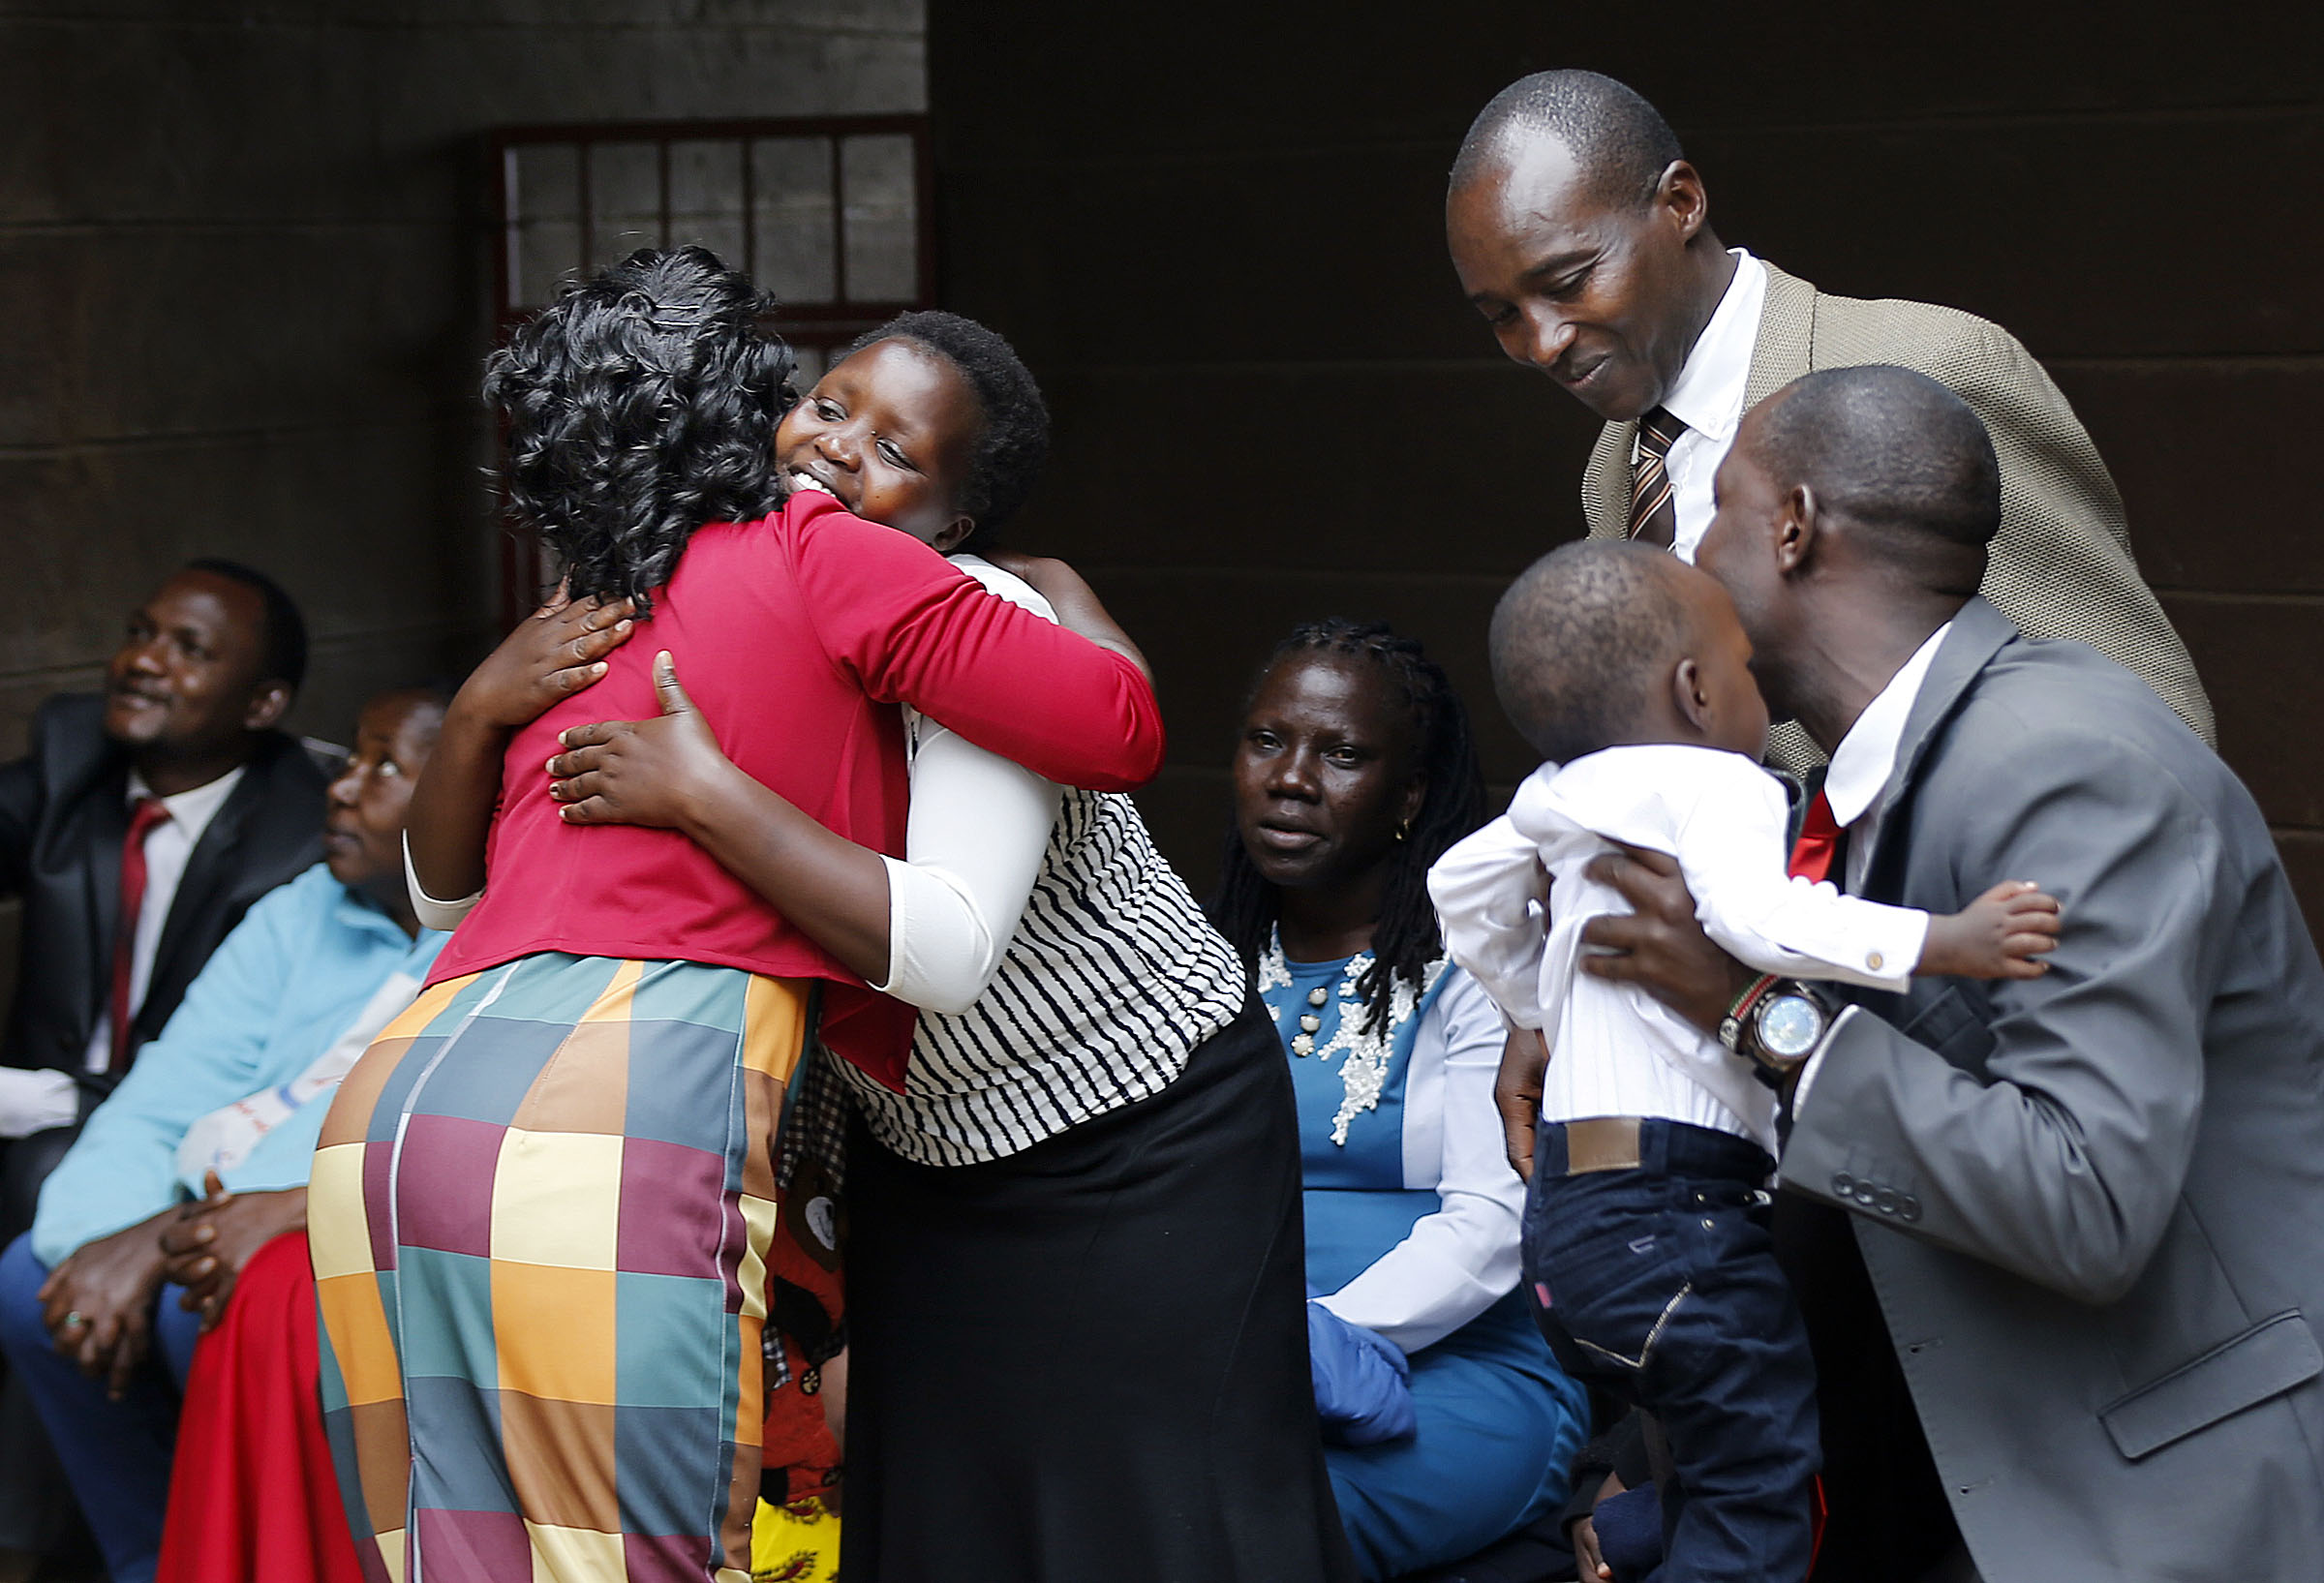 People greet before a special devotional with President Russell M. Nelson of The Church of Jesus Christ of Latter-day Saints in Nairobi, Kenya, on Monday, April 16, 2018. At left, Elizabeth Naku hugs Corredy Kuria.